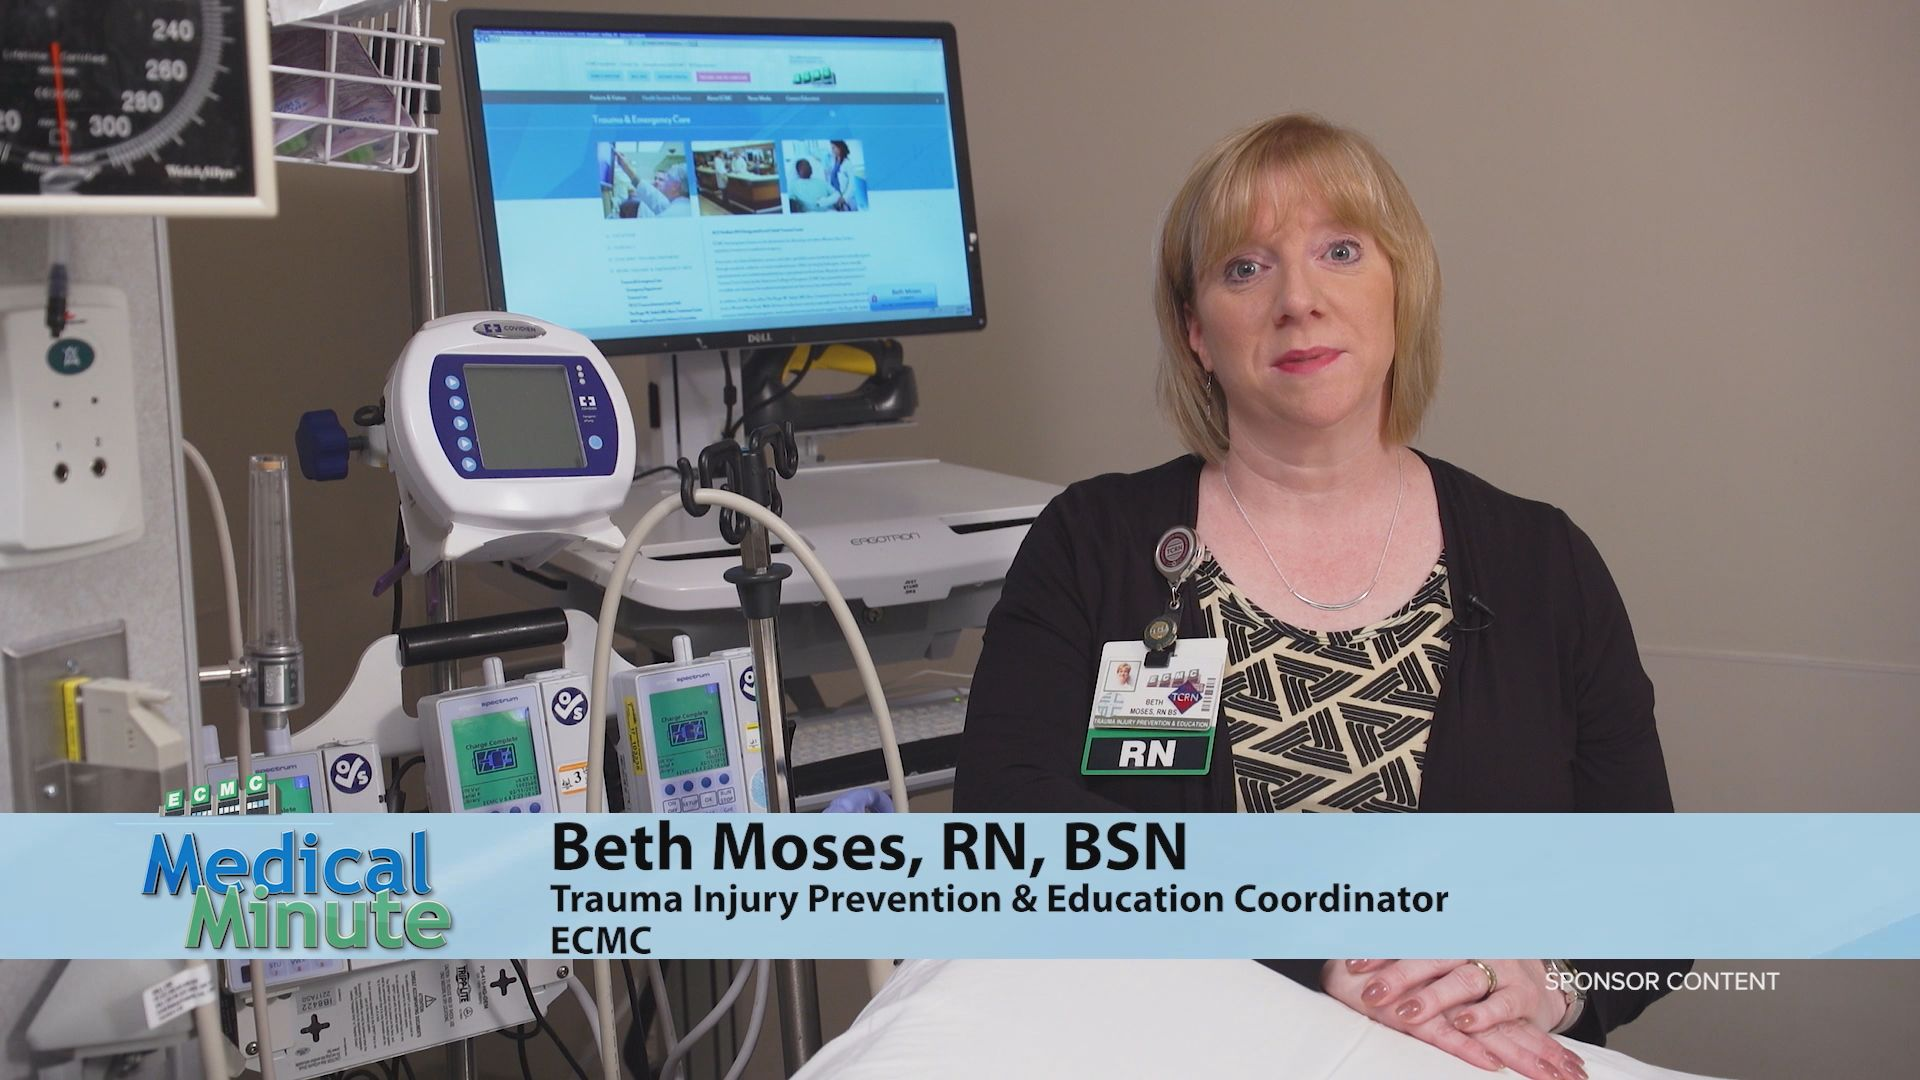 ECMCMedicalMinute BethMoses PedestrianSafety July2019 STILL